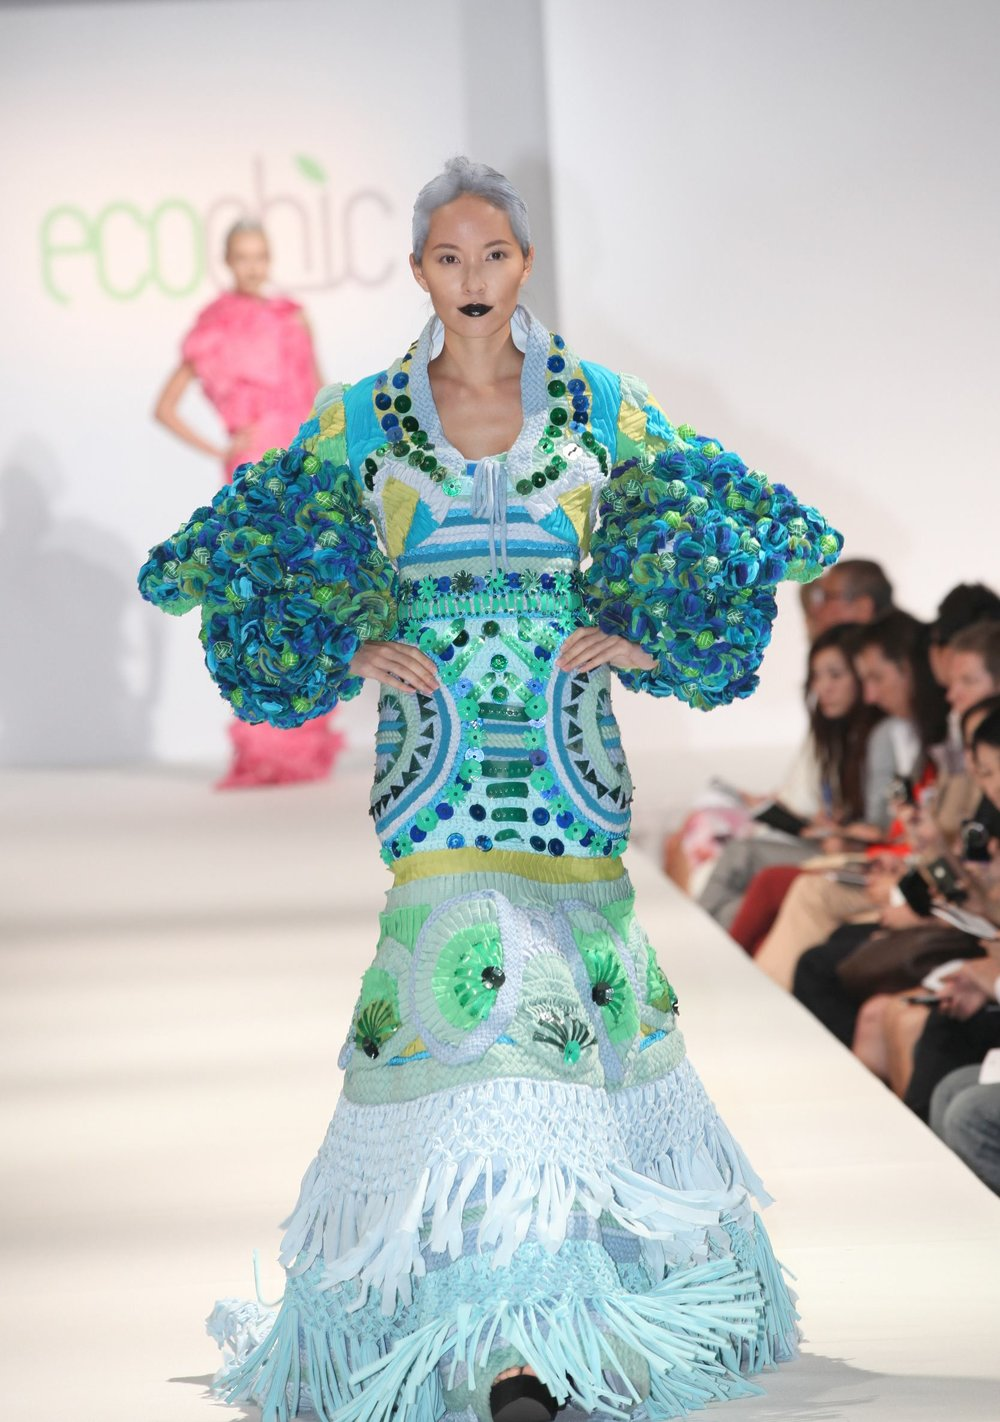 _Eco Couture Oliver Tolentino goen from factory scraps, plastic water bottles and straws.jpg